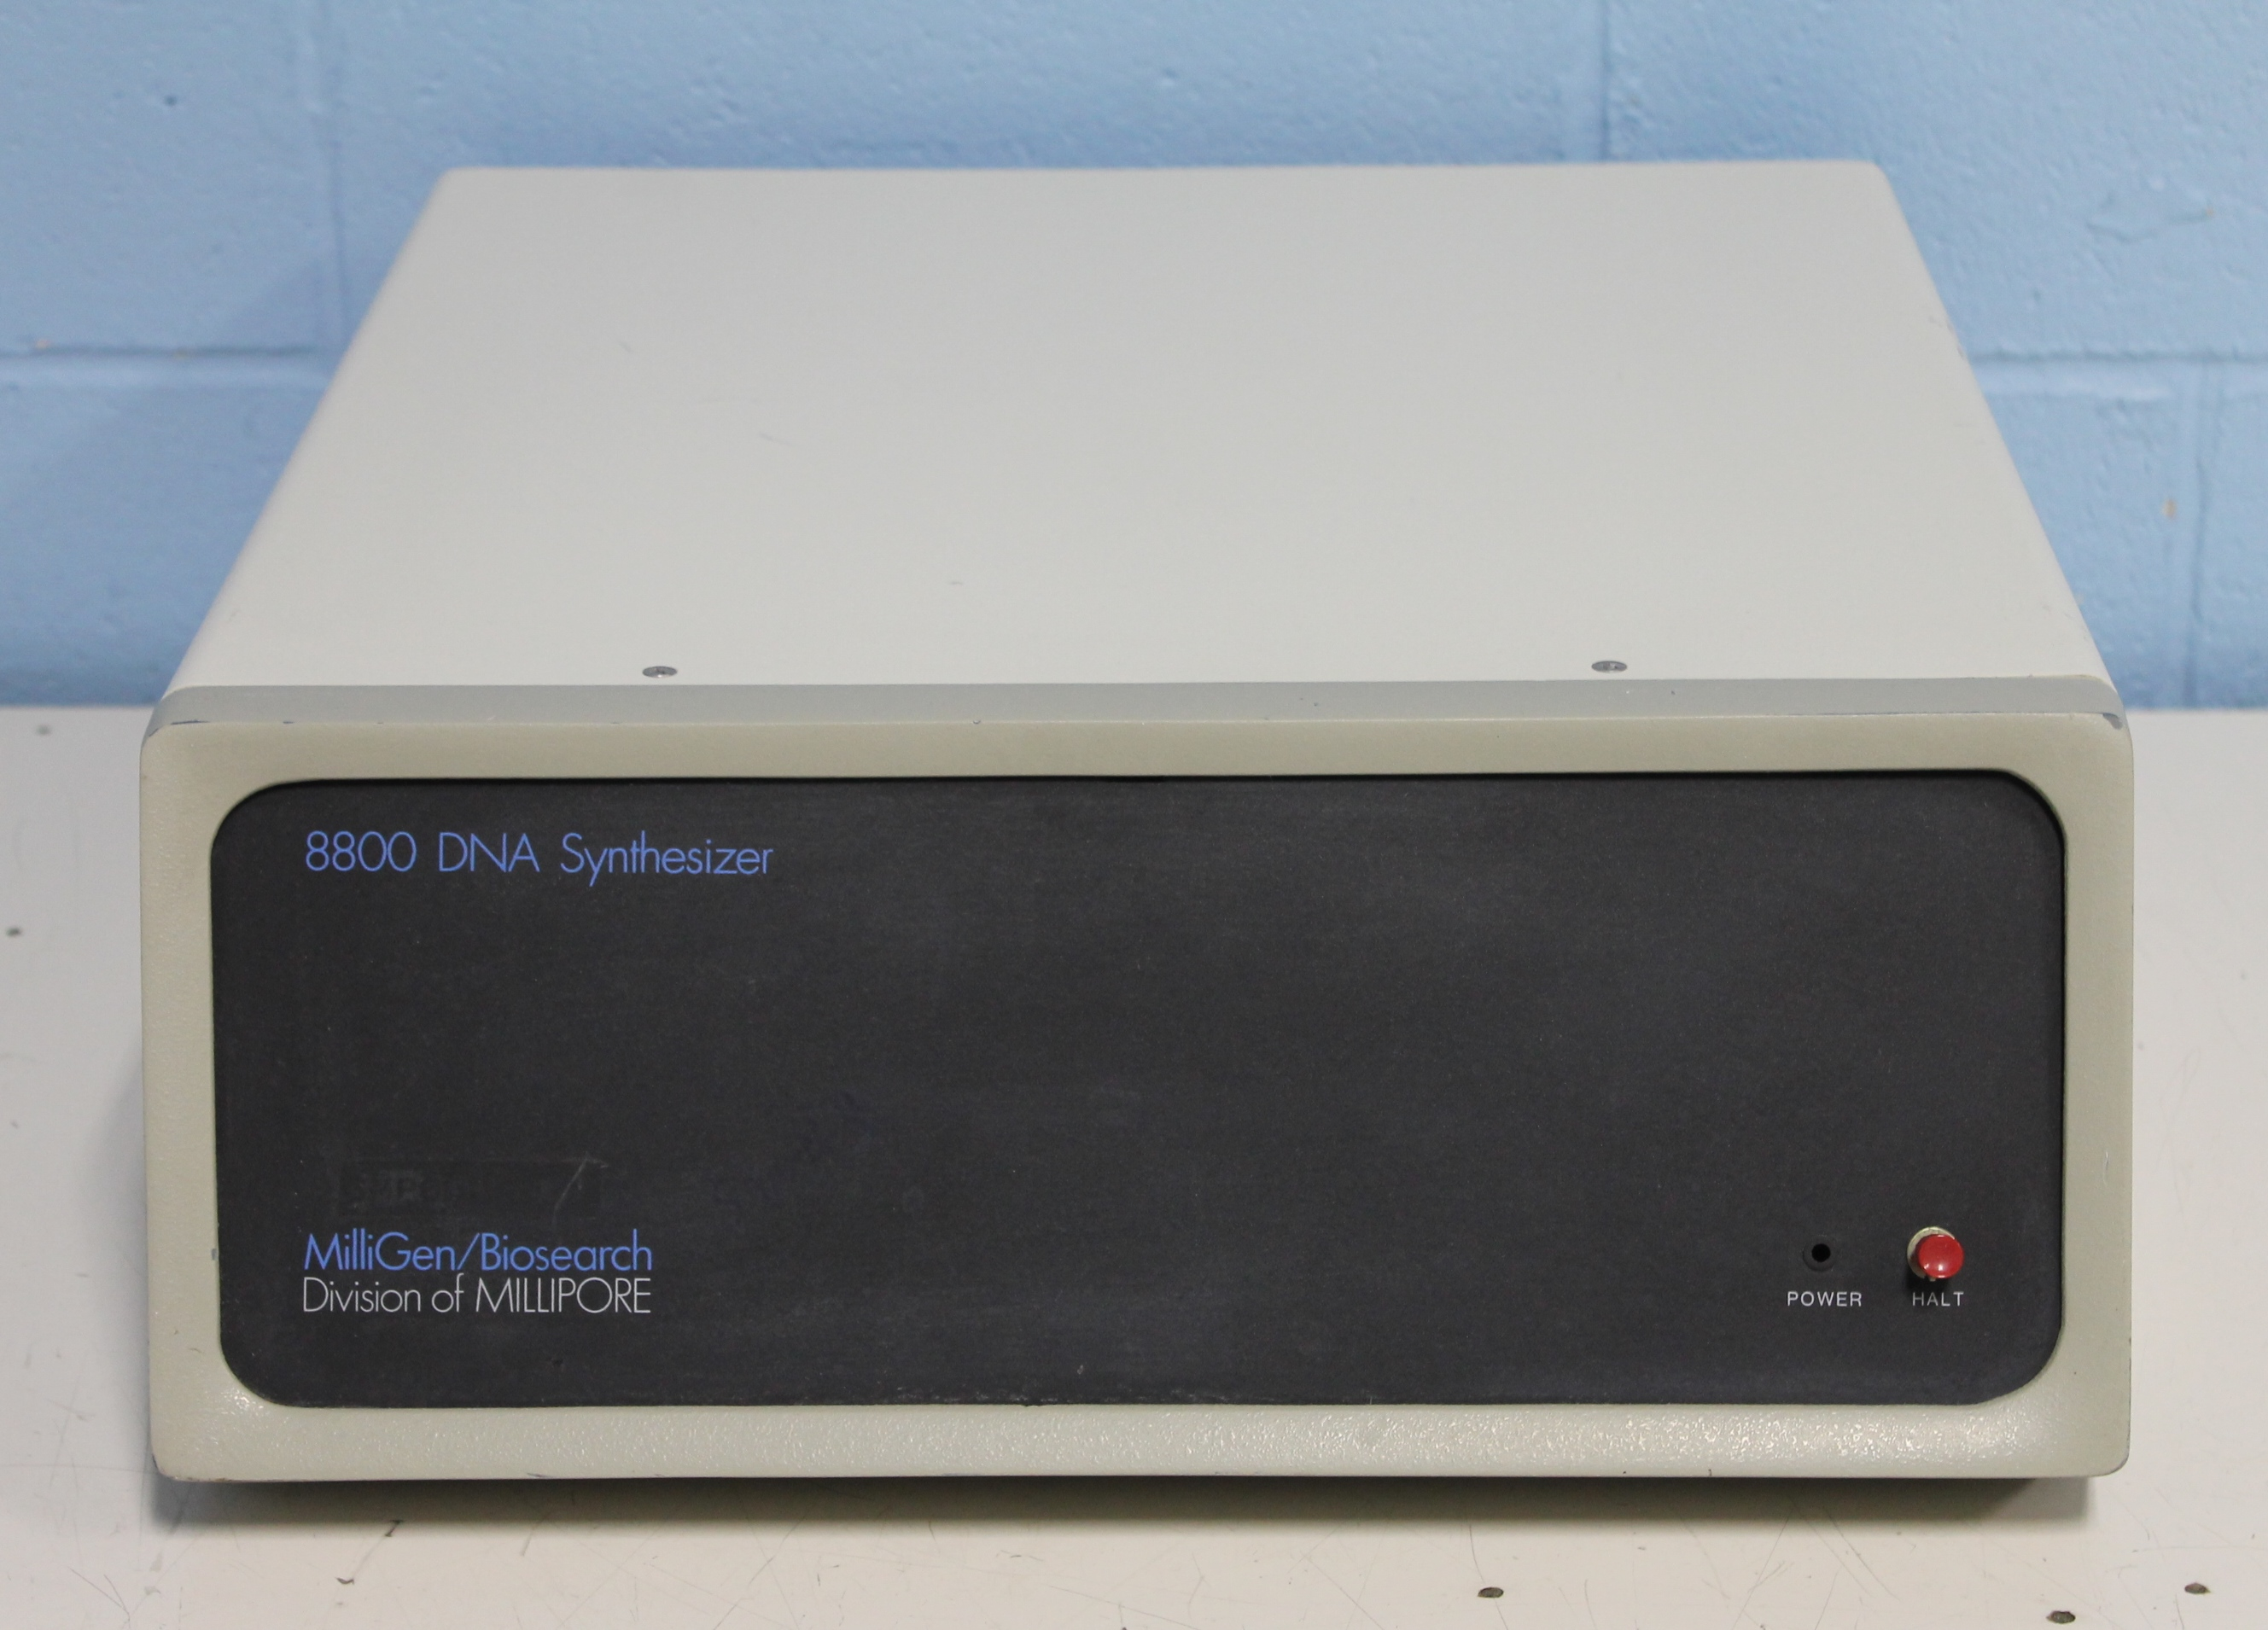 Millipore 8800 DNA Synthesizer Controller Image